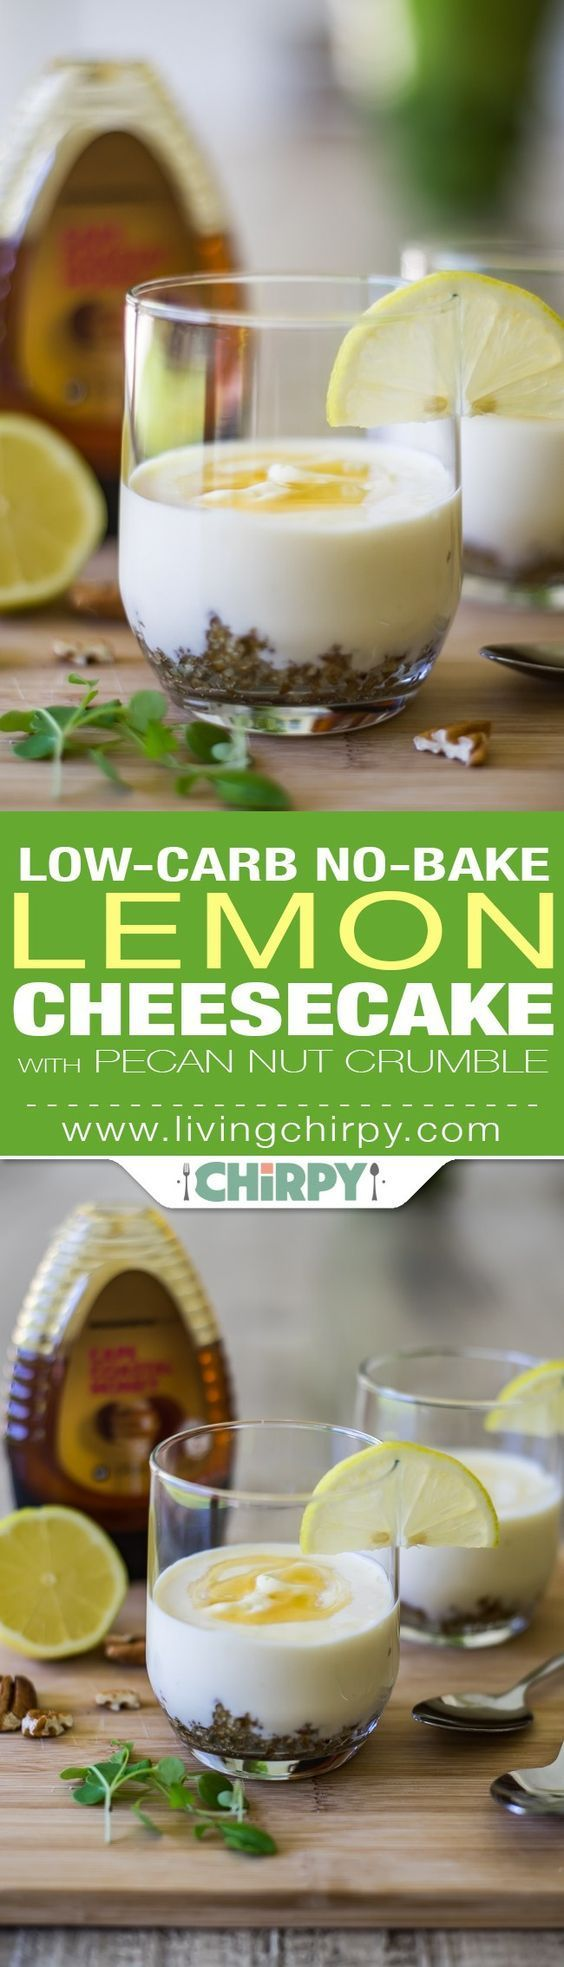 5 Ingredient Low-Carb No-Bake Lemon Cheesecake with Pecan Nut Crumble. An easy (and healthy) low-carb dessert that's sure to satisfy your sweet tooth!